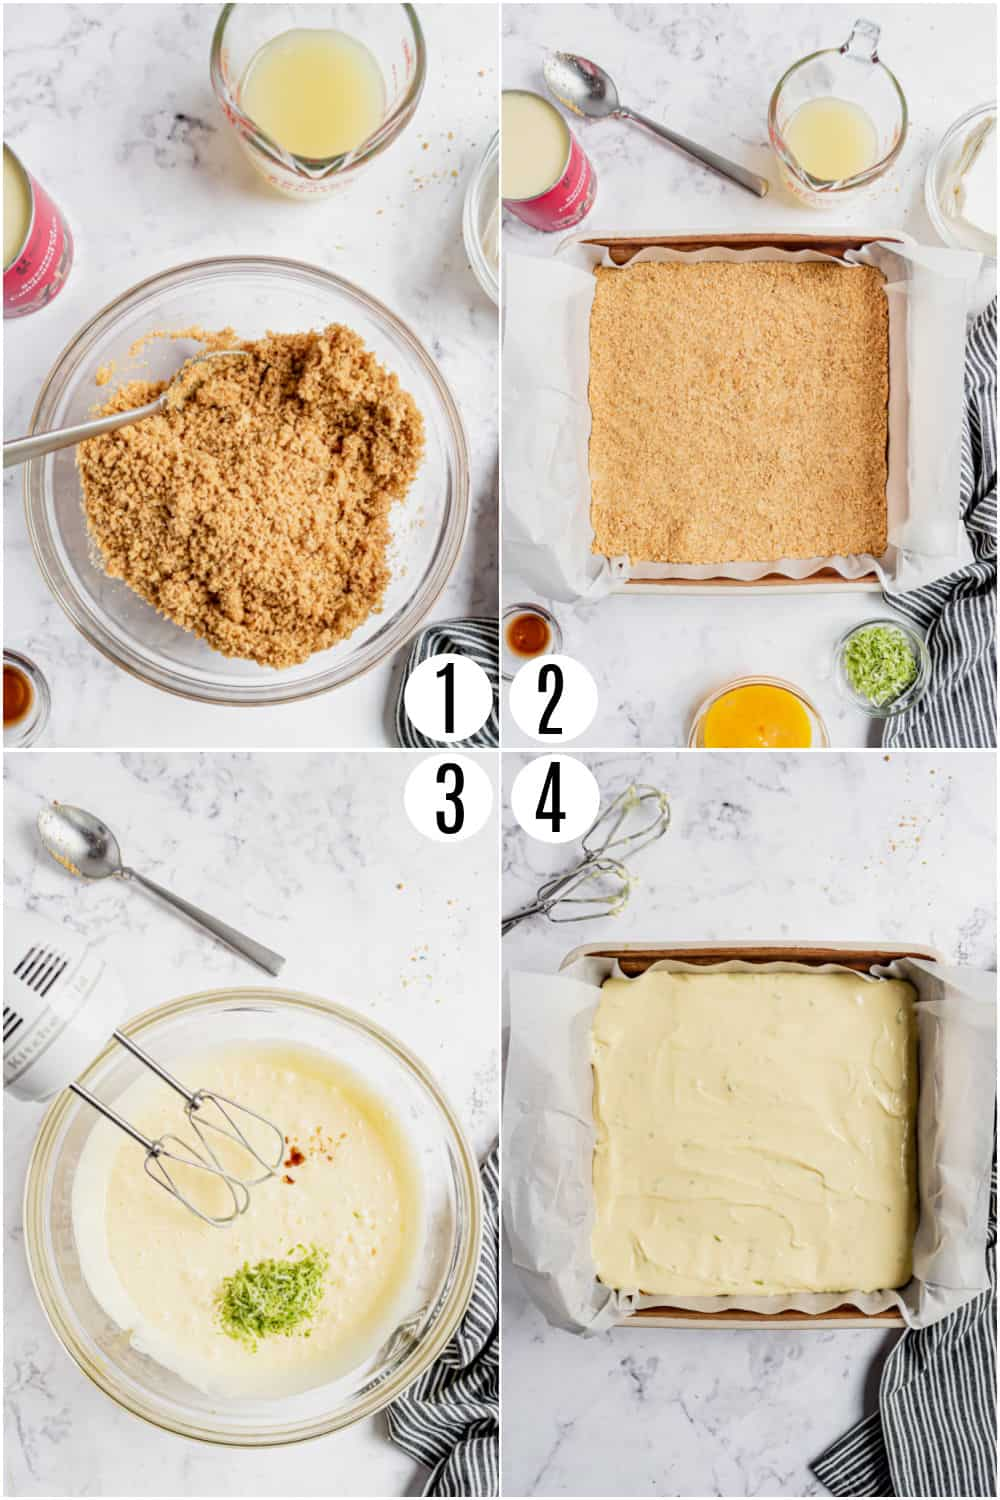 Step by step photos showing how to make key lime pie bars.